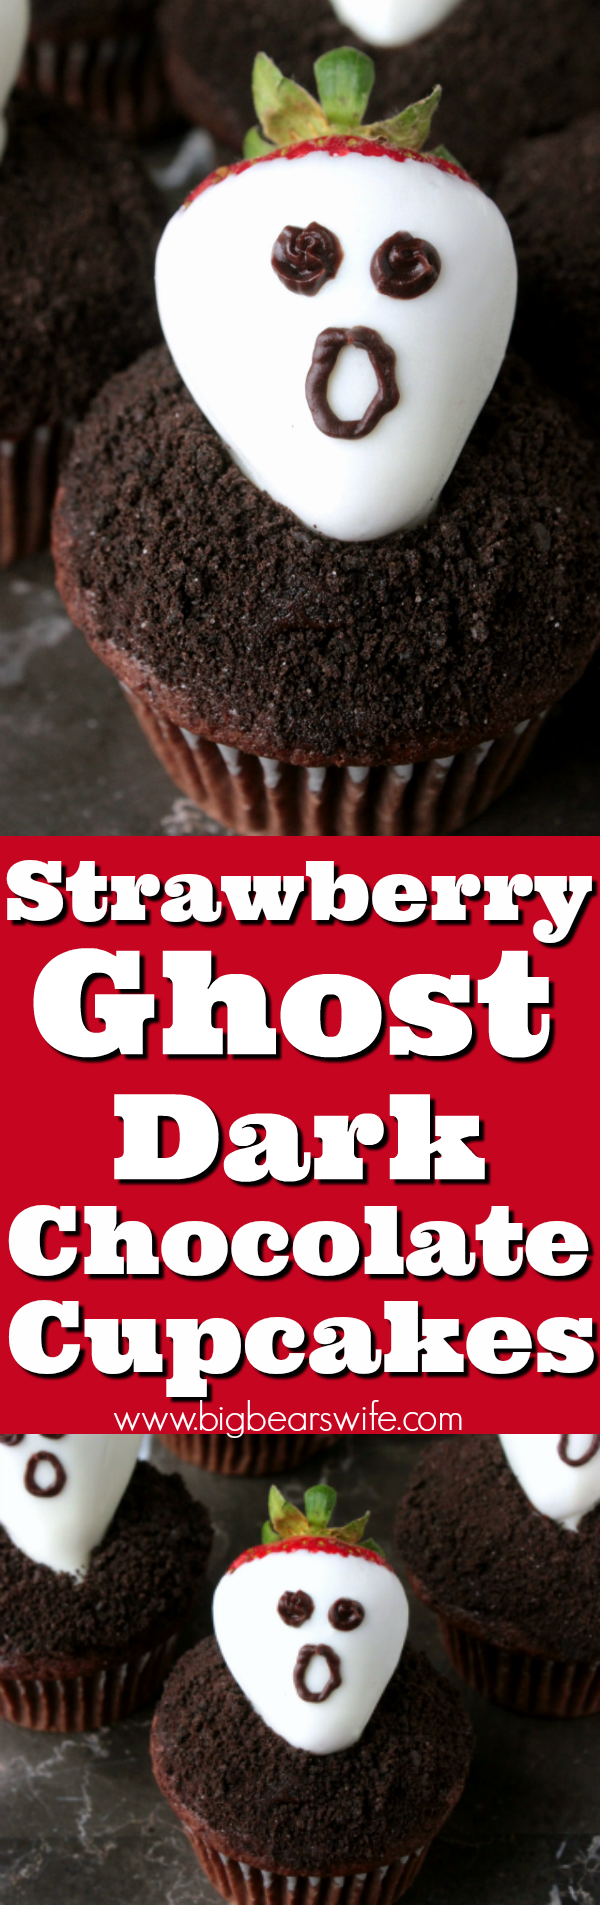 Strawberry Ghost Dark Chocolate Cupcakes - Don't get spooked! These Strawberry Ghost Dark Chocolate Cupcakes are nothing be scaredabout! They're a sweet and easy dessert that's perfect for Halloween!